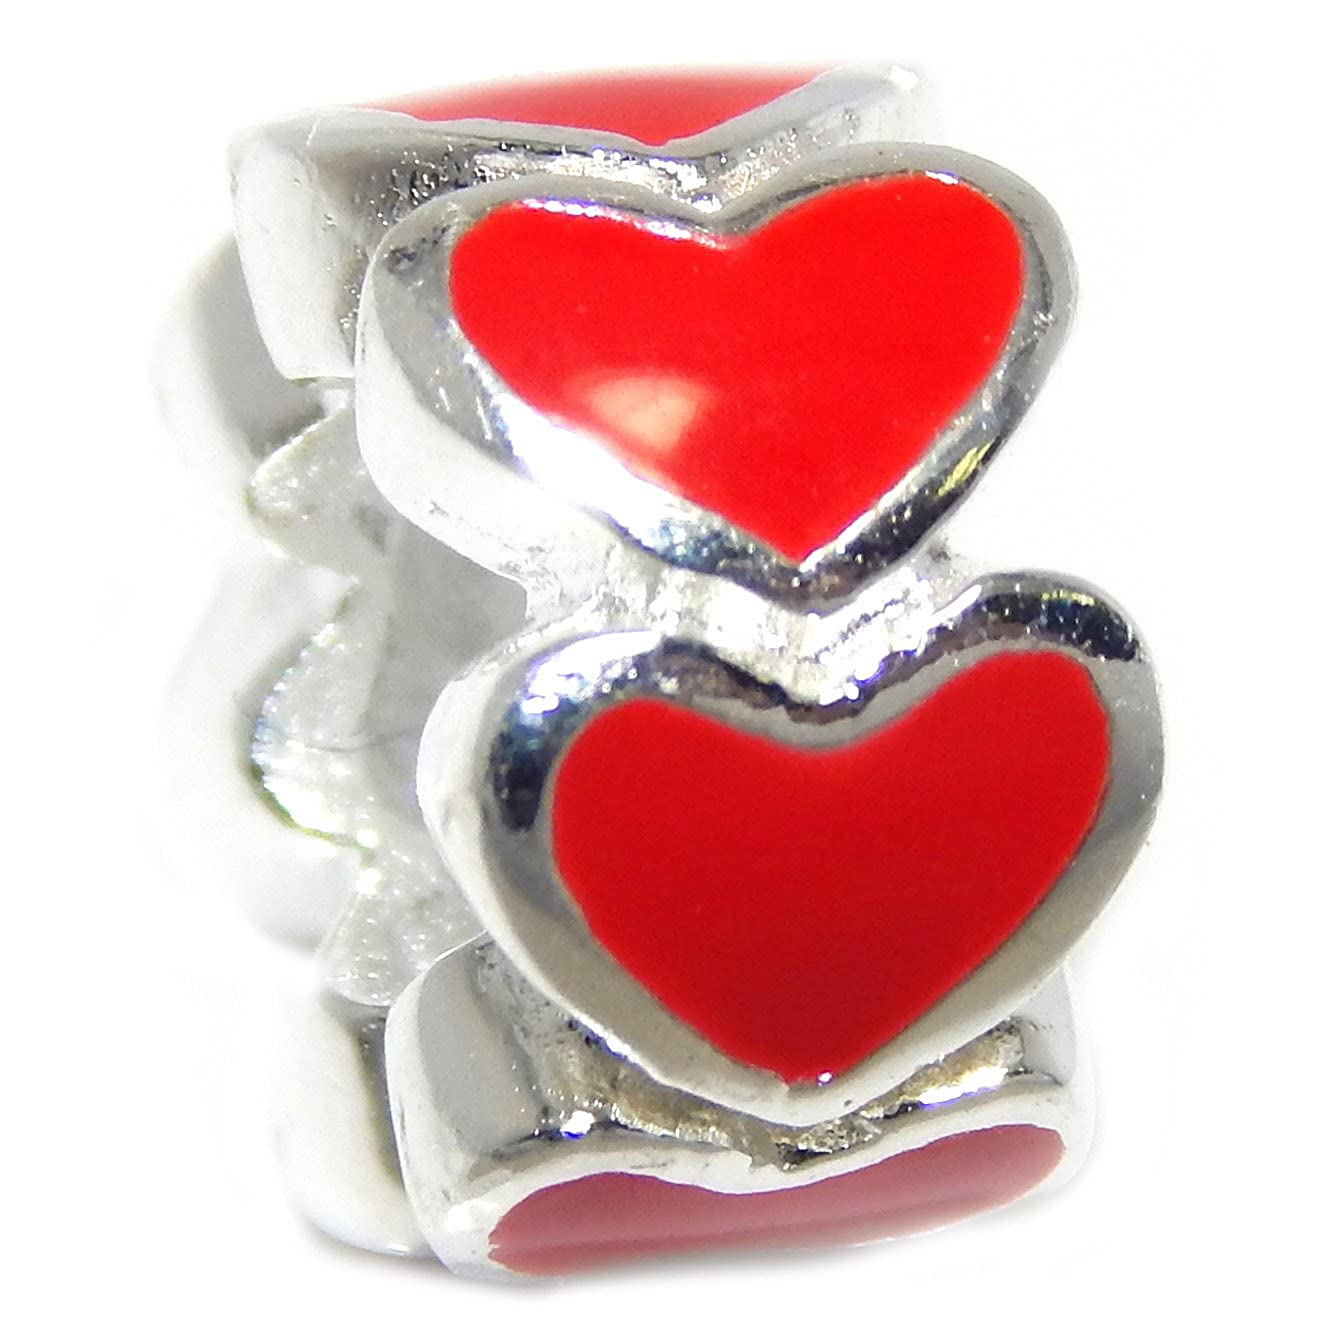 Solid 925 Sterling Silver Band of Red Hearts Charm Bead